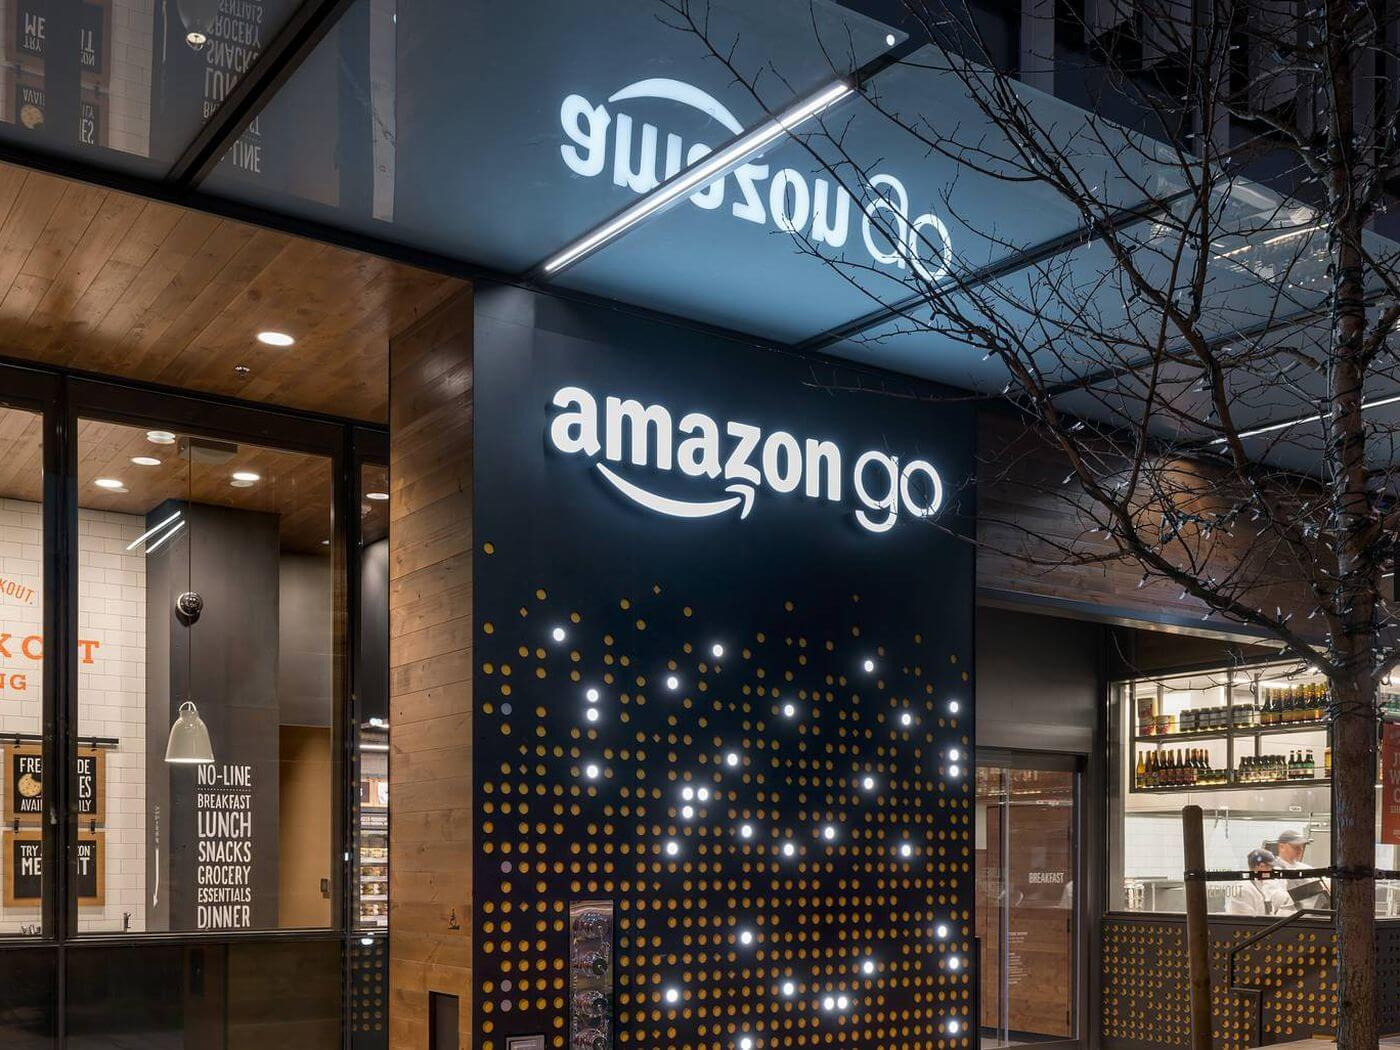 Amazon's store expansion is beyond ideal for introverts